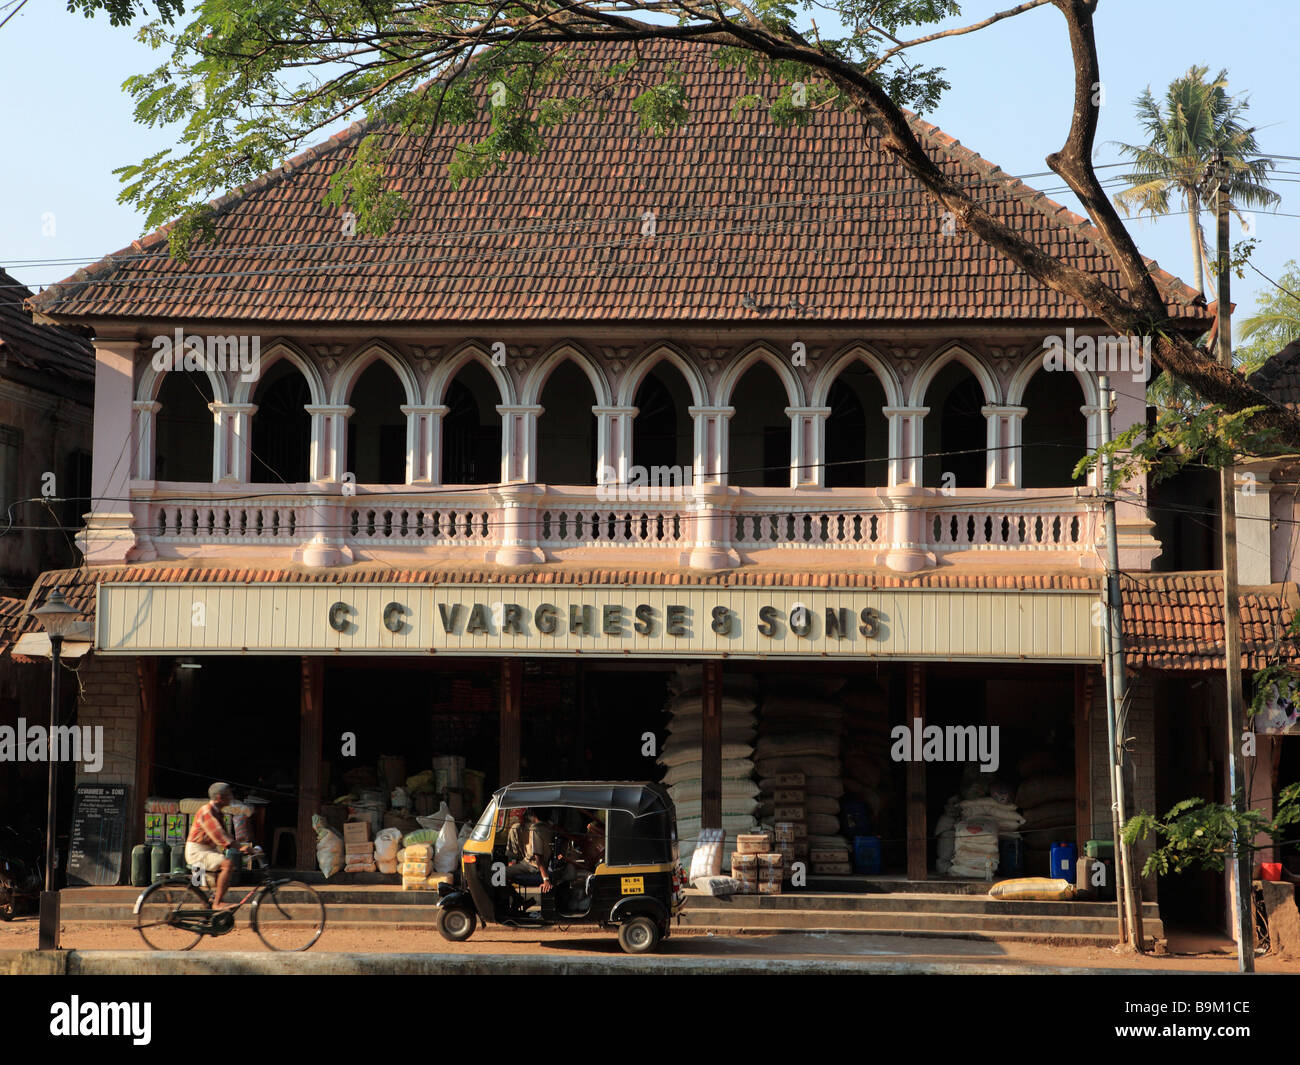 India Kerala Alappuzha Alleppey traditional shophouse - Stock Image